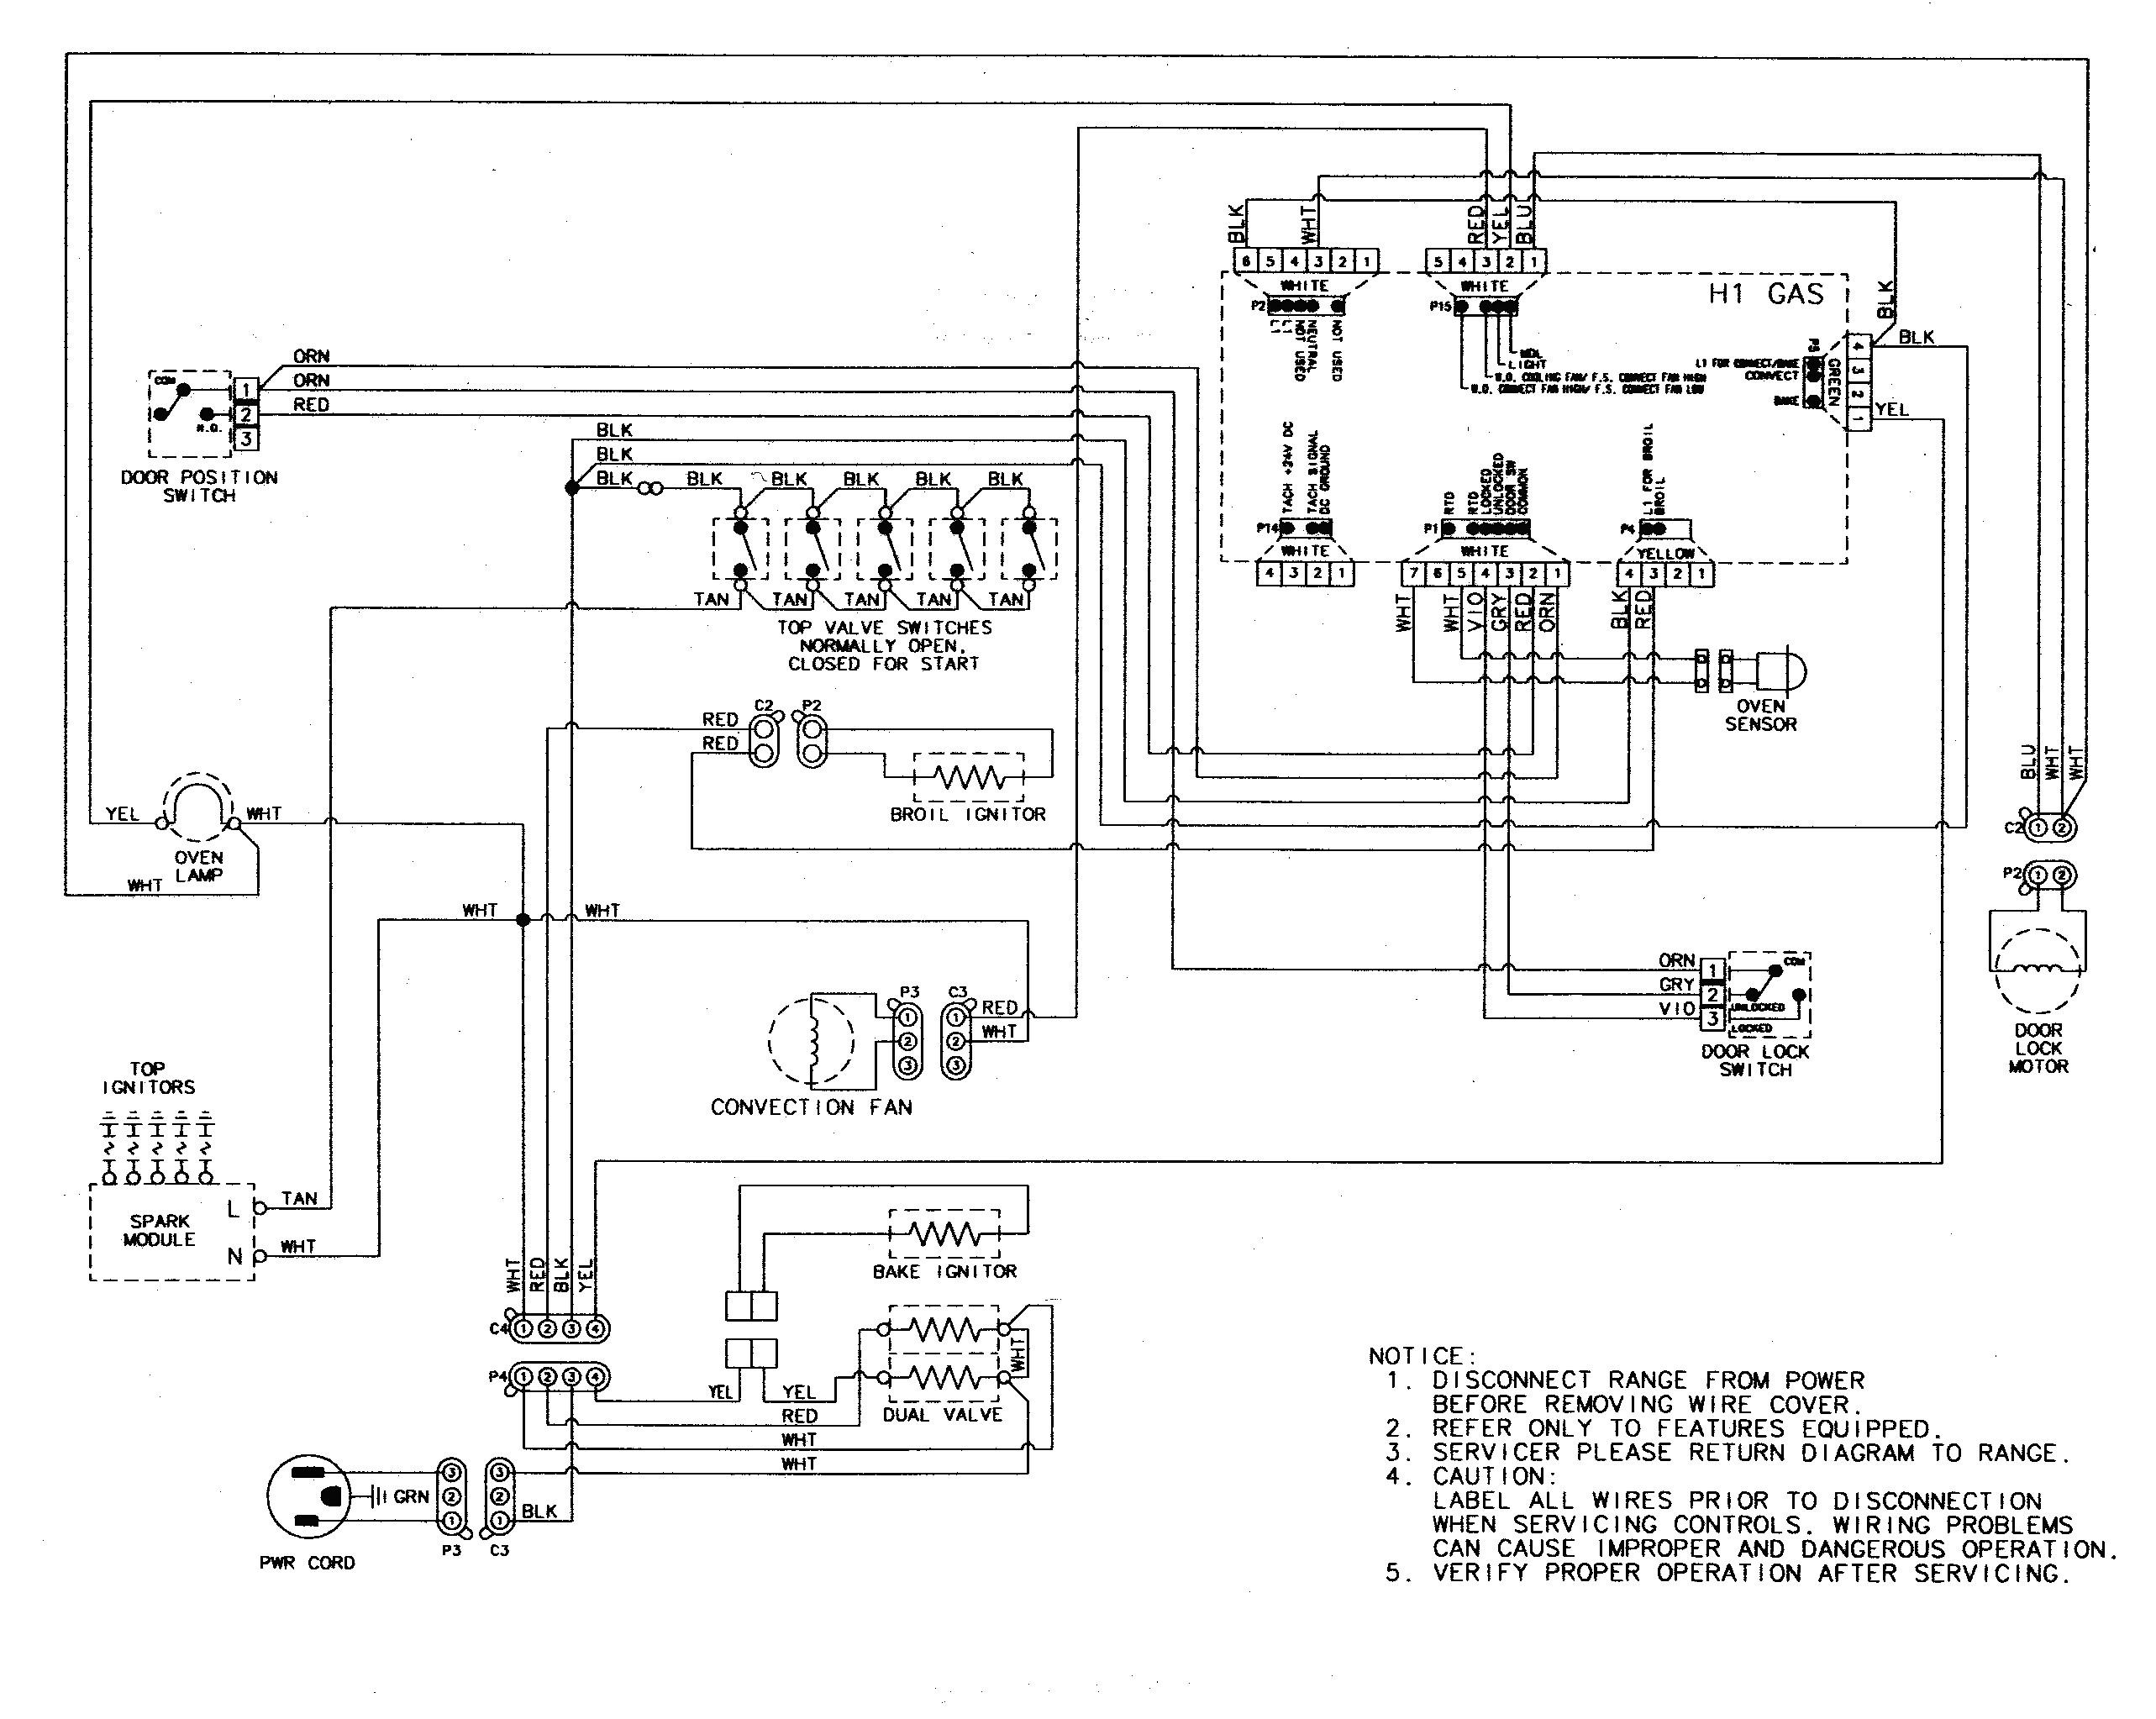 Pac Sni 35 Wiring Diagram | Wiring Diagram - Pac Sni 35 Wiring Diagram